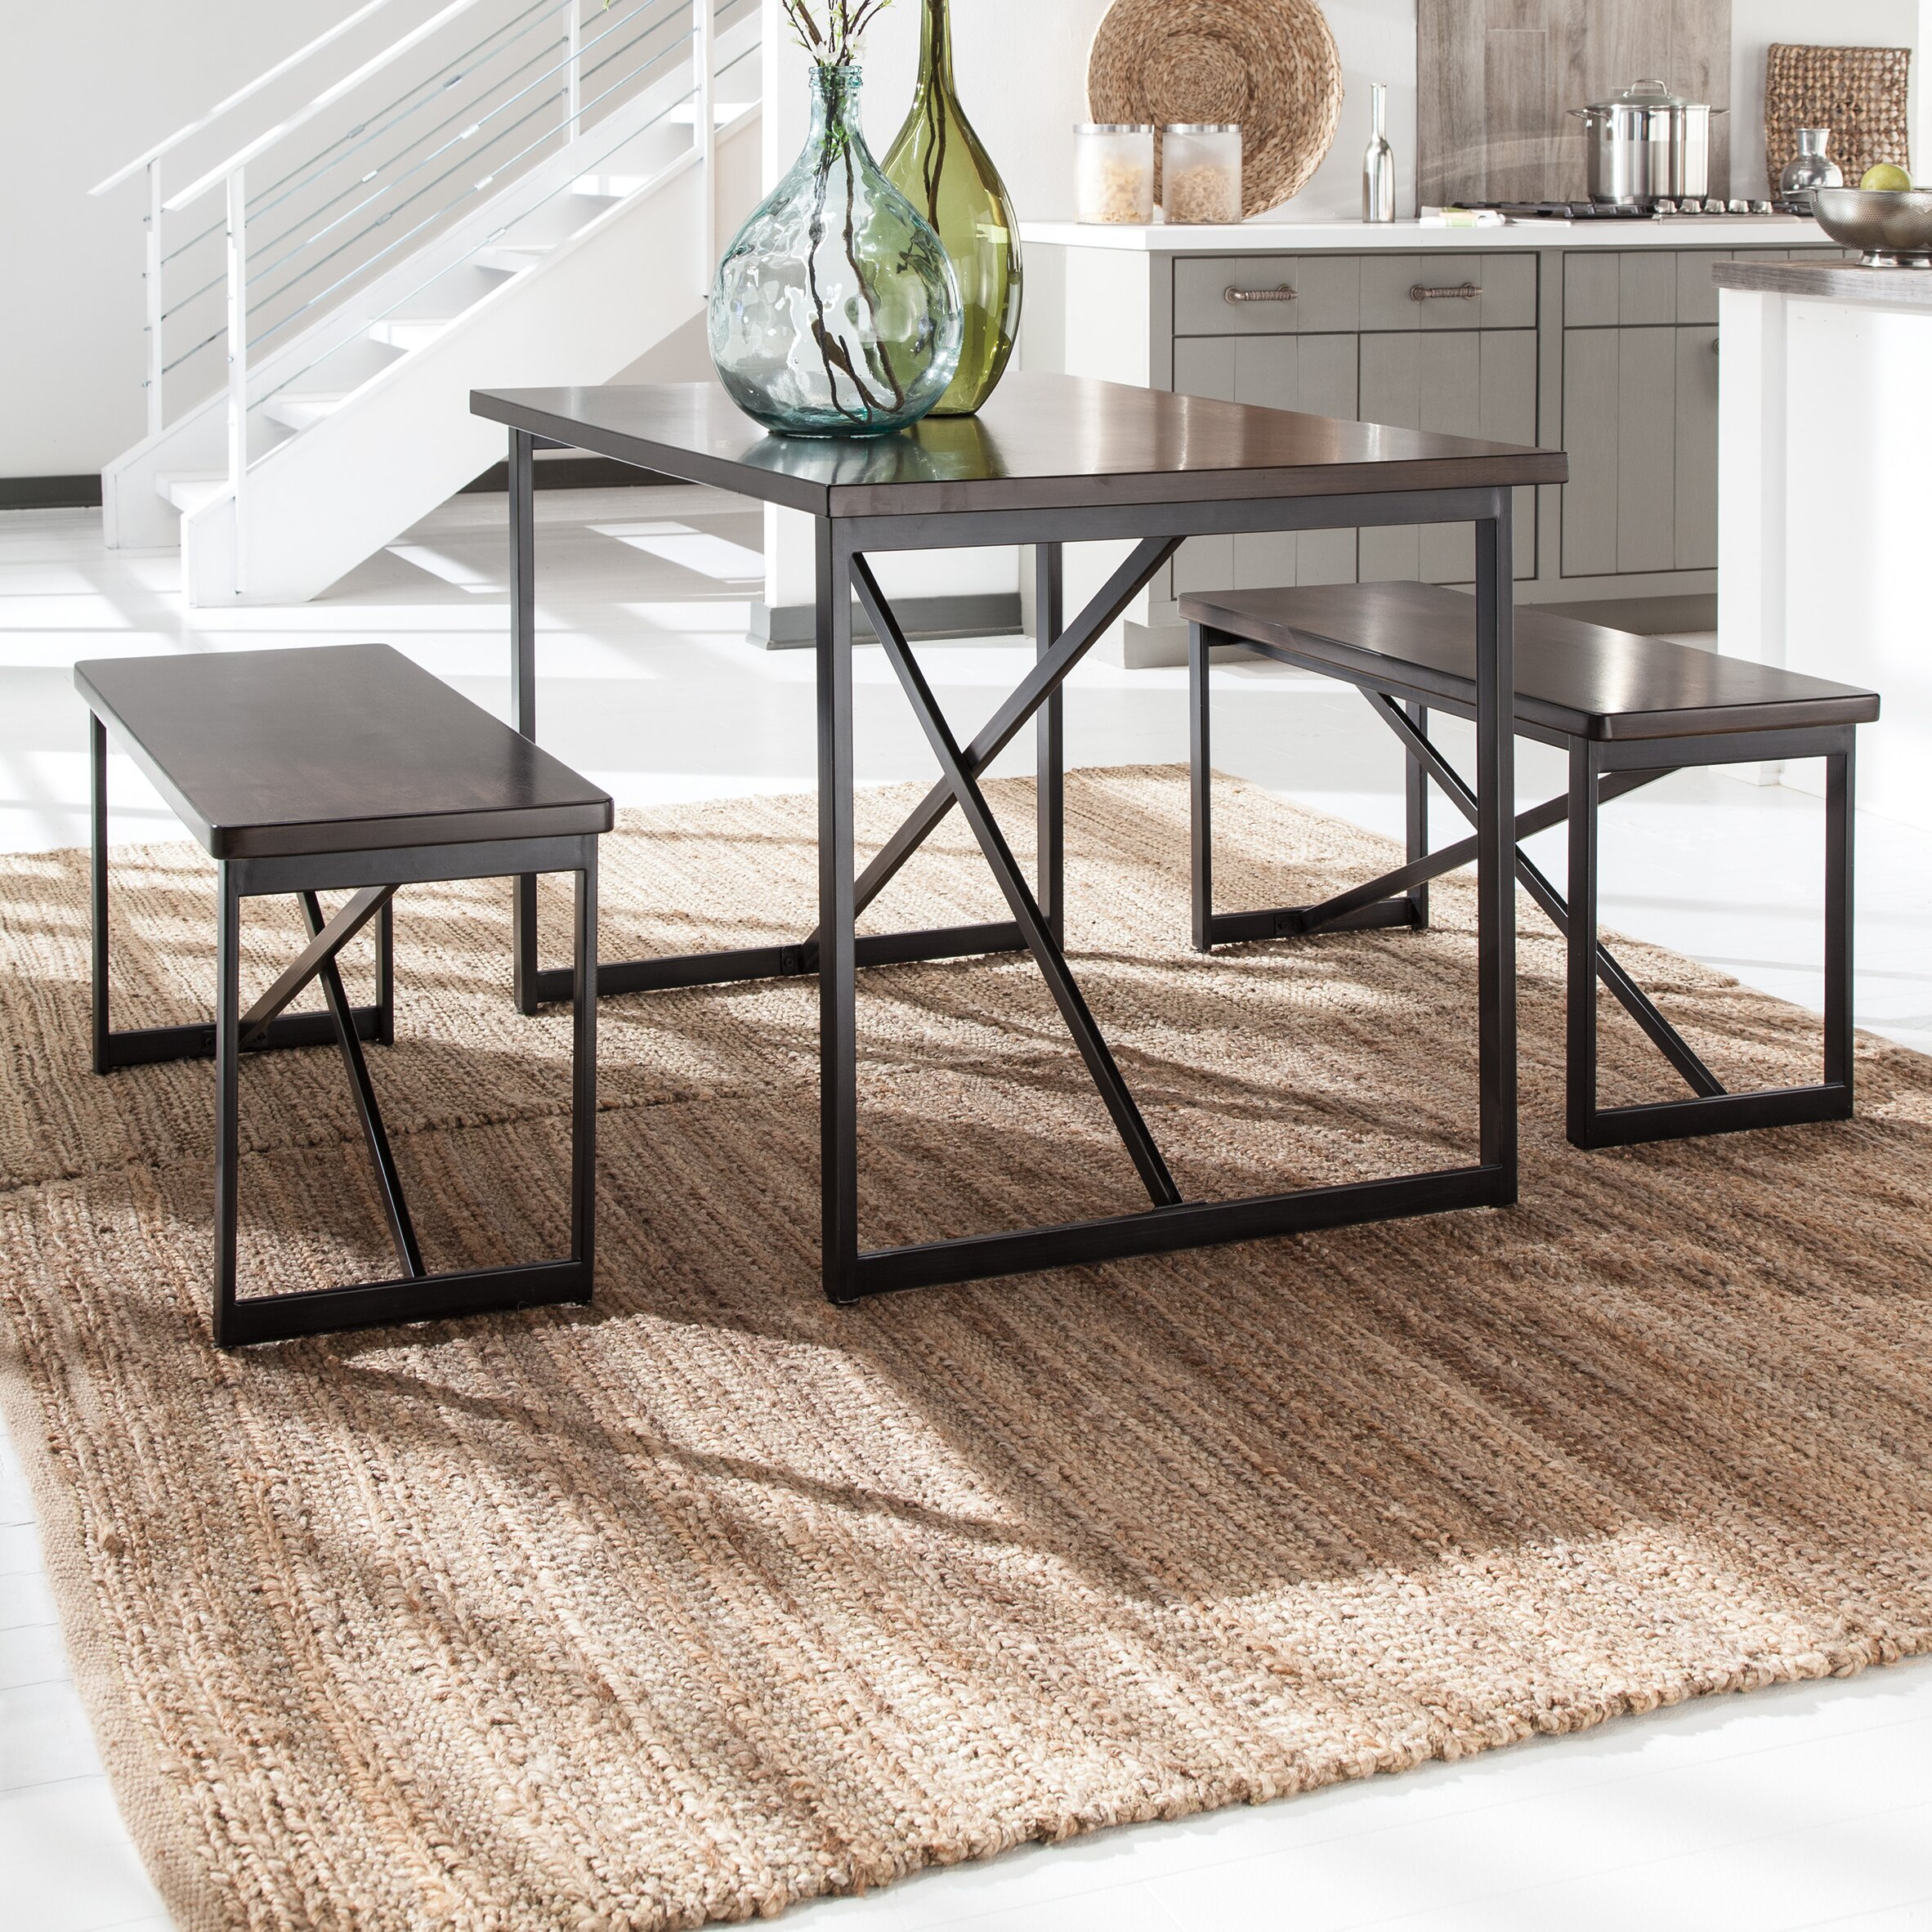 Signature design by ashley joring 3 piece dining set for 2 piece dining room set